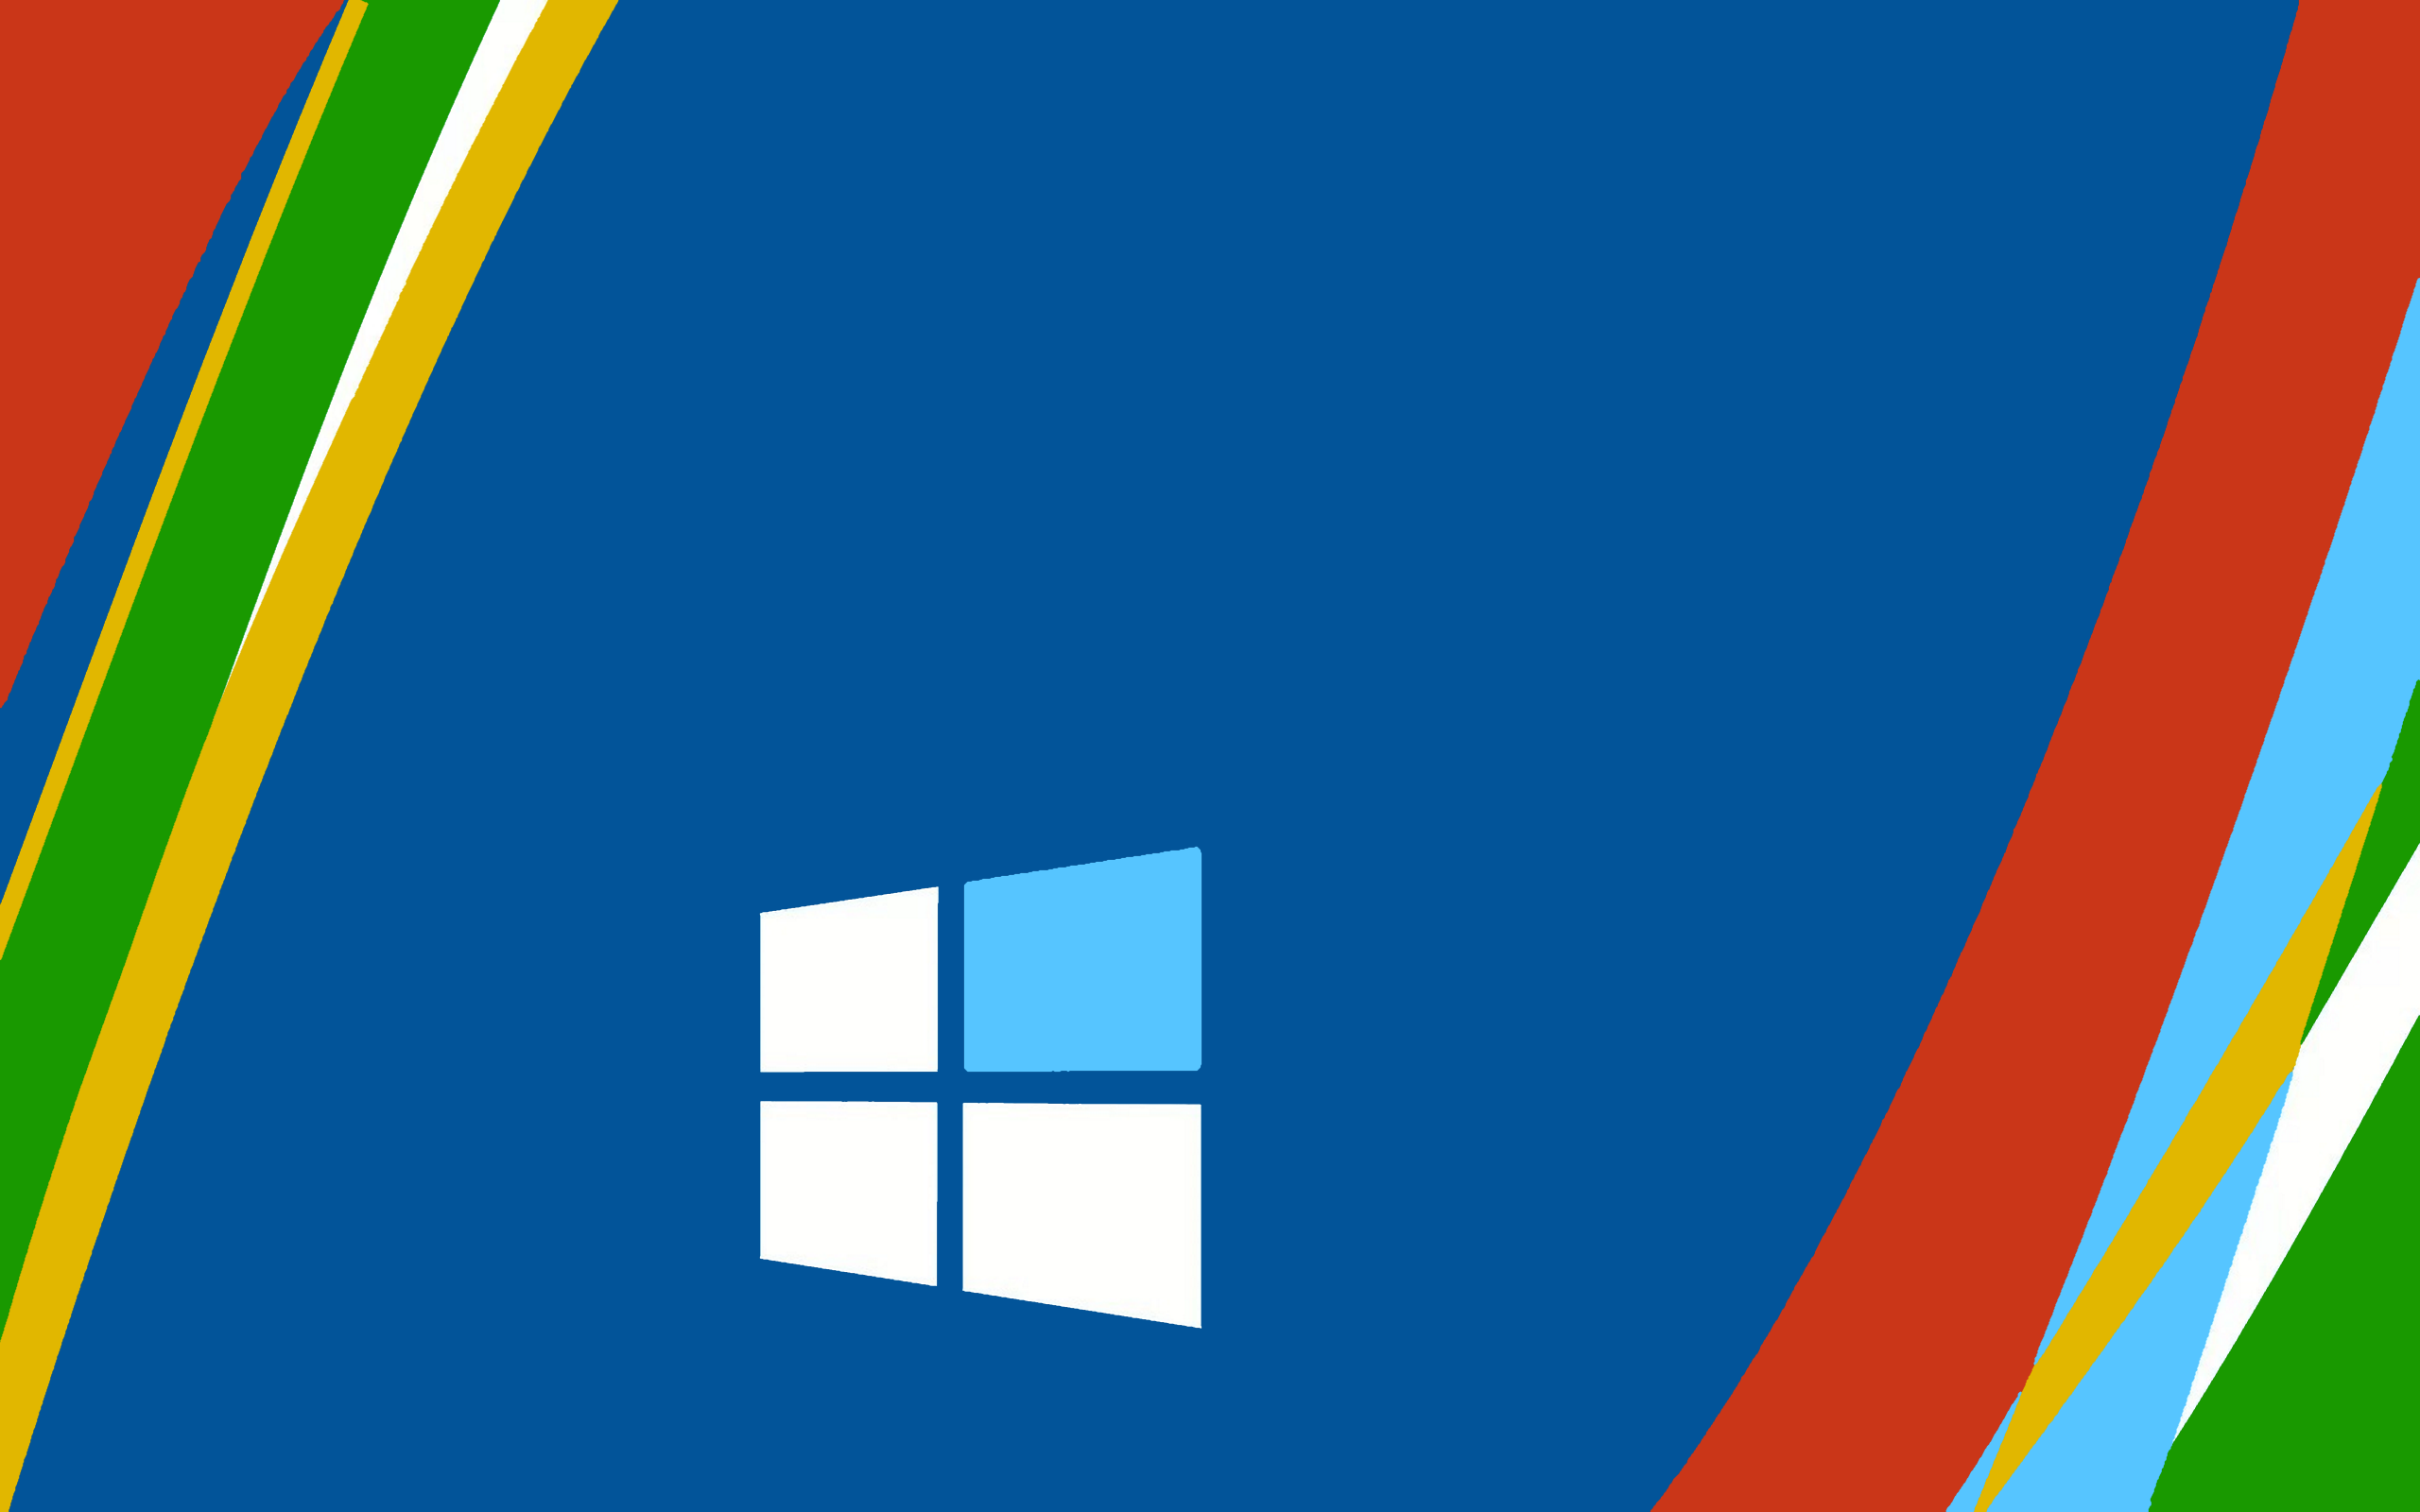 Windows 10 Wallpaper Hd Airwallpaper Com